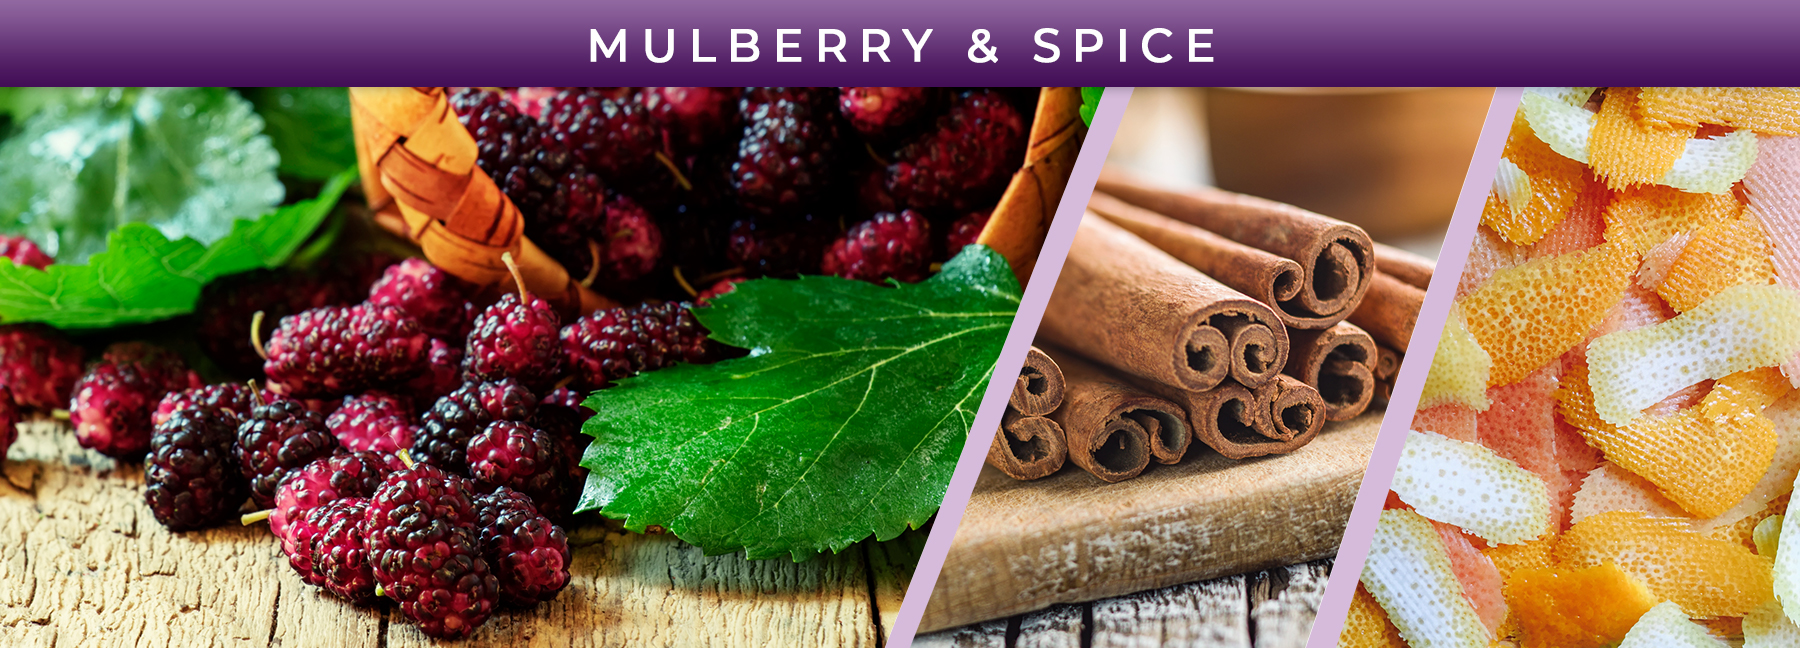 Mulberry and Spice fragrance elements